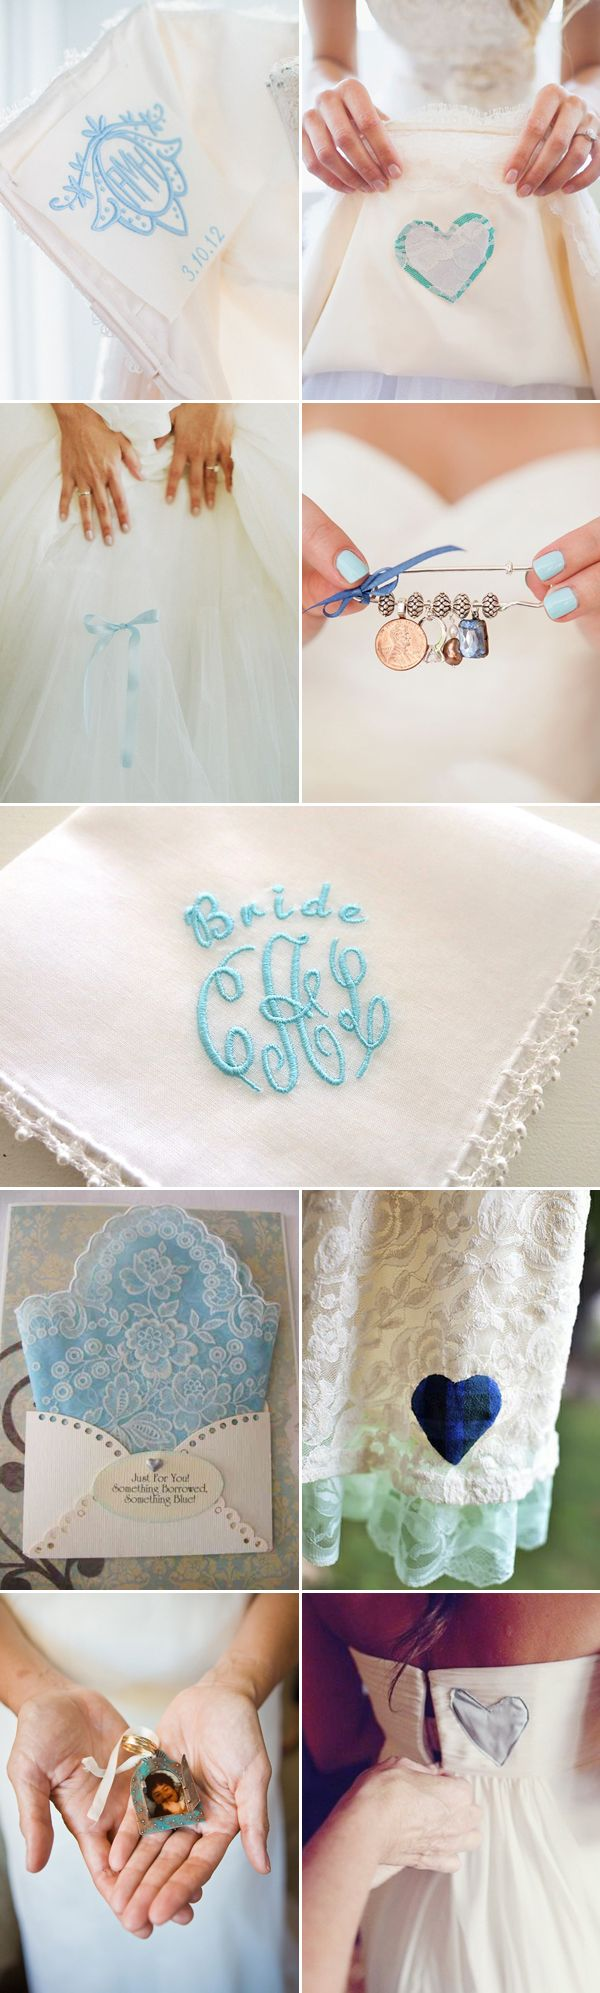 55 Creative Ideas For Your Something Blue